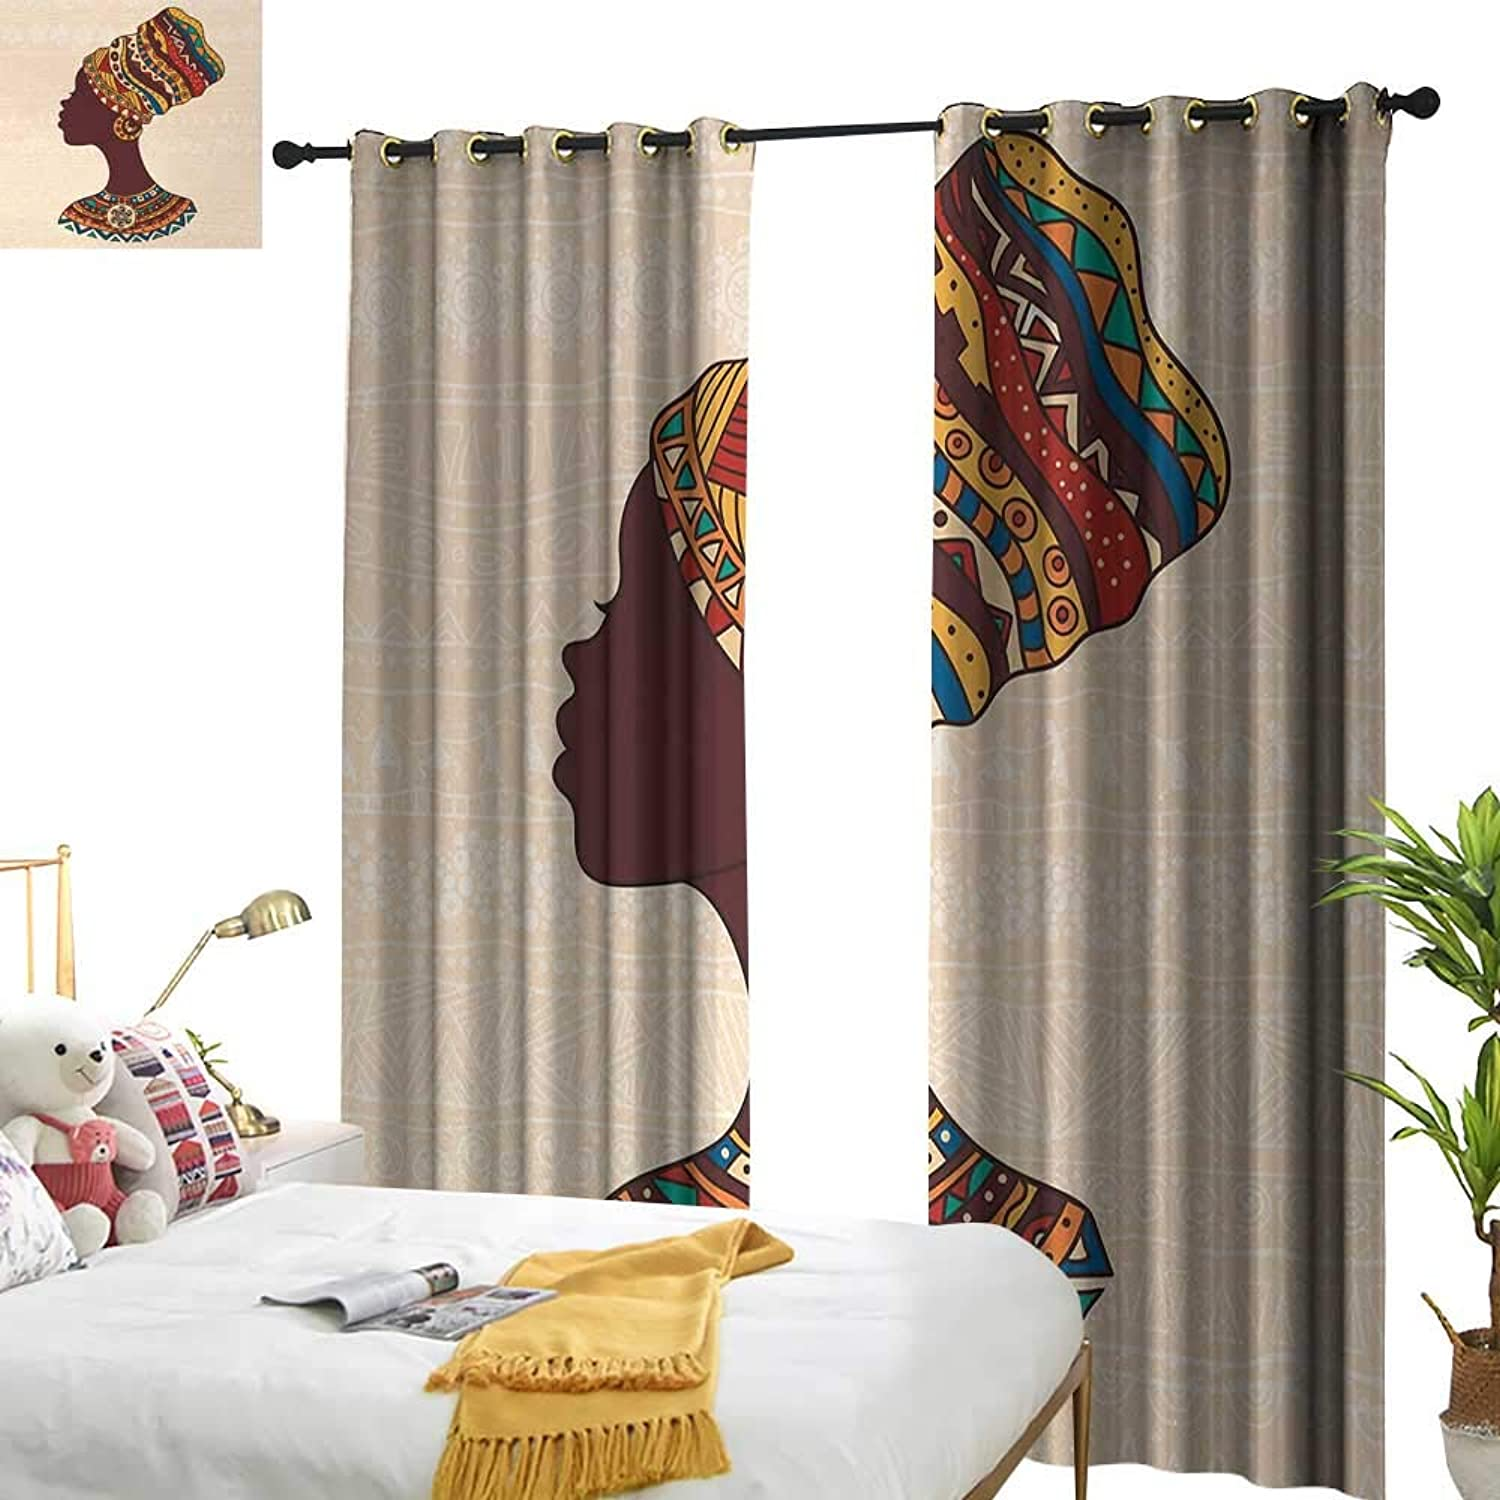 Anyangeight Tribal,Blackout Draperies for Bedroom,African Woman in Traditional Ethnic Fashion Dress Portrait Glamour Graphic,W120 xL108,Suitable for Bedroom Living Room Study, etc.